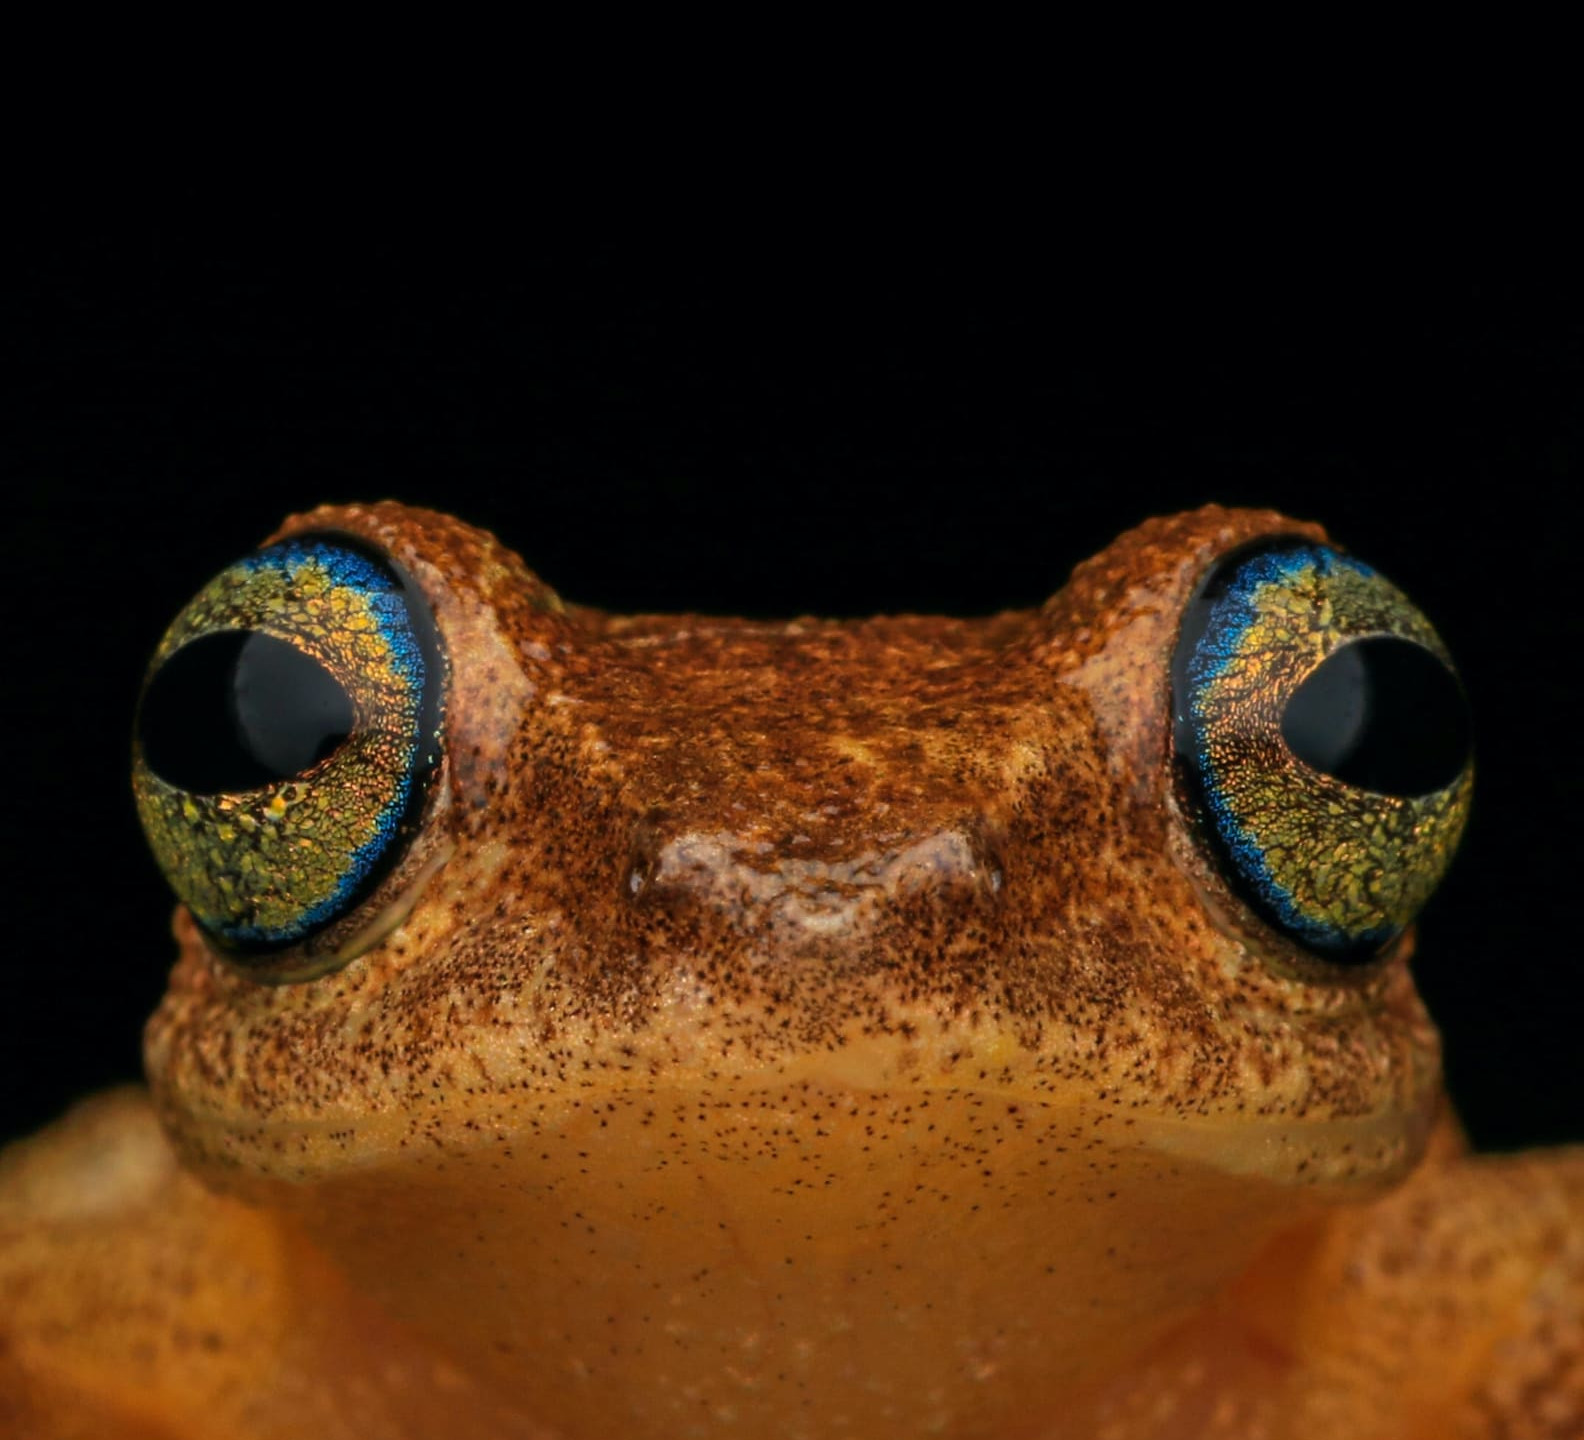 Finding Philautus: Bush Frogs in the Western Ghats